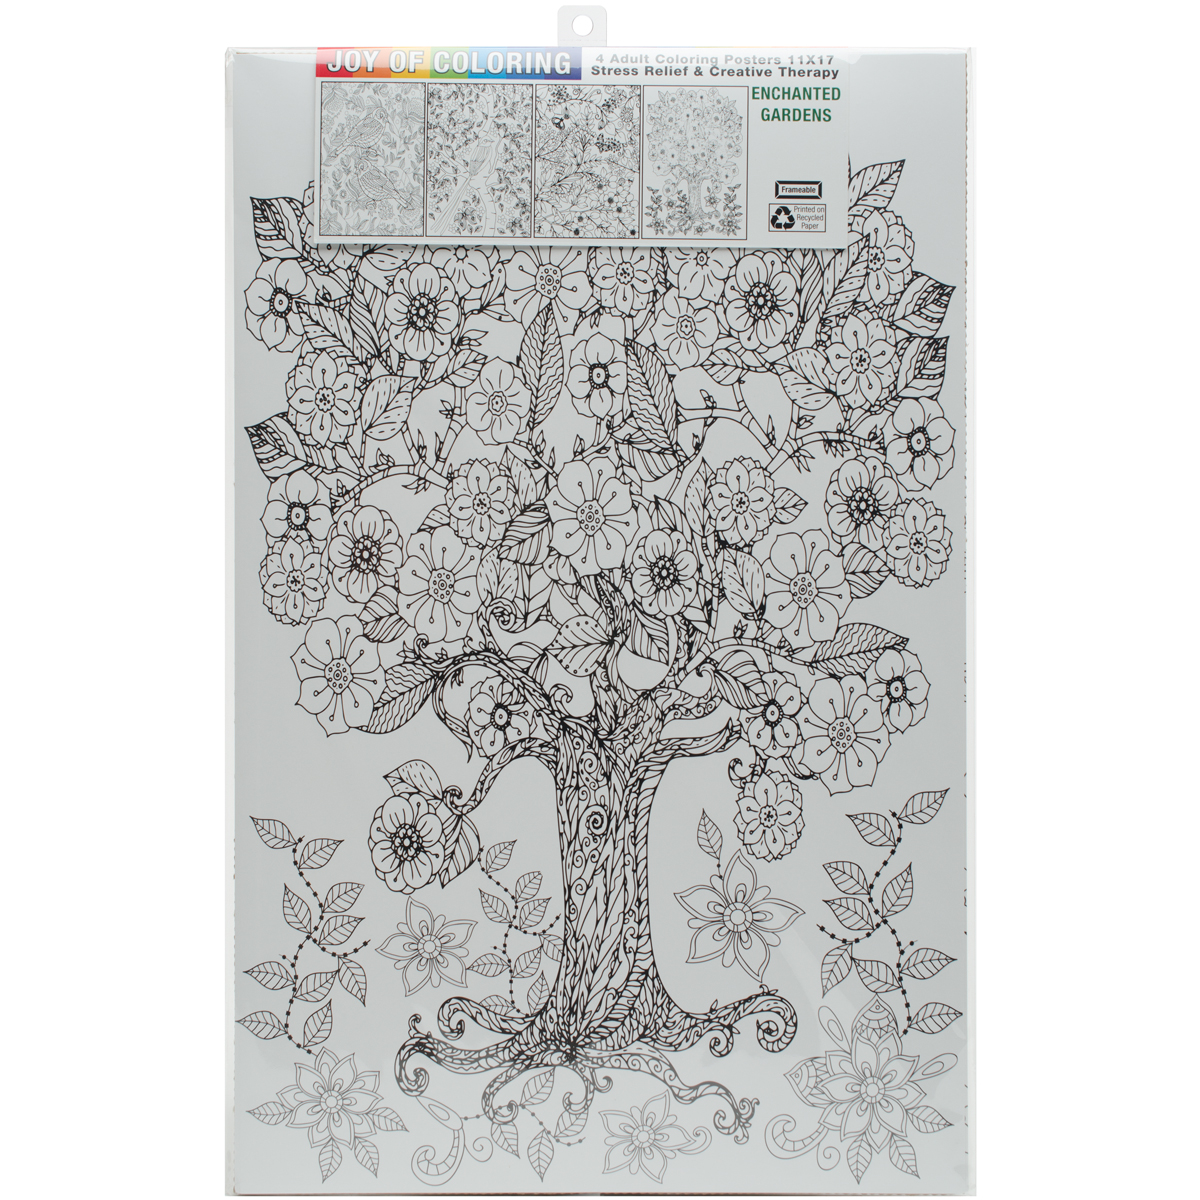 "Joy Of Coloring Adult Coloring Posters 11""x17"" 4/Pkg-Enchanted Garden"